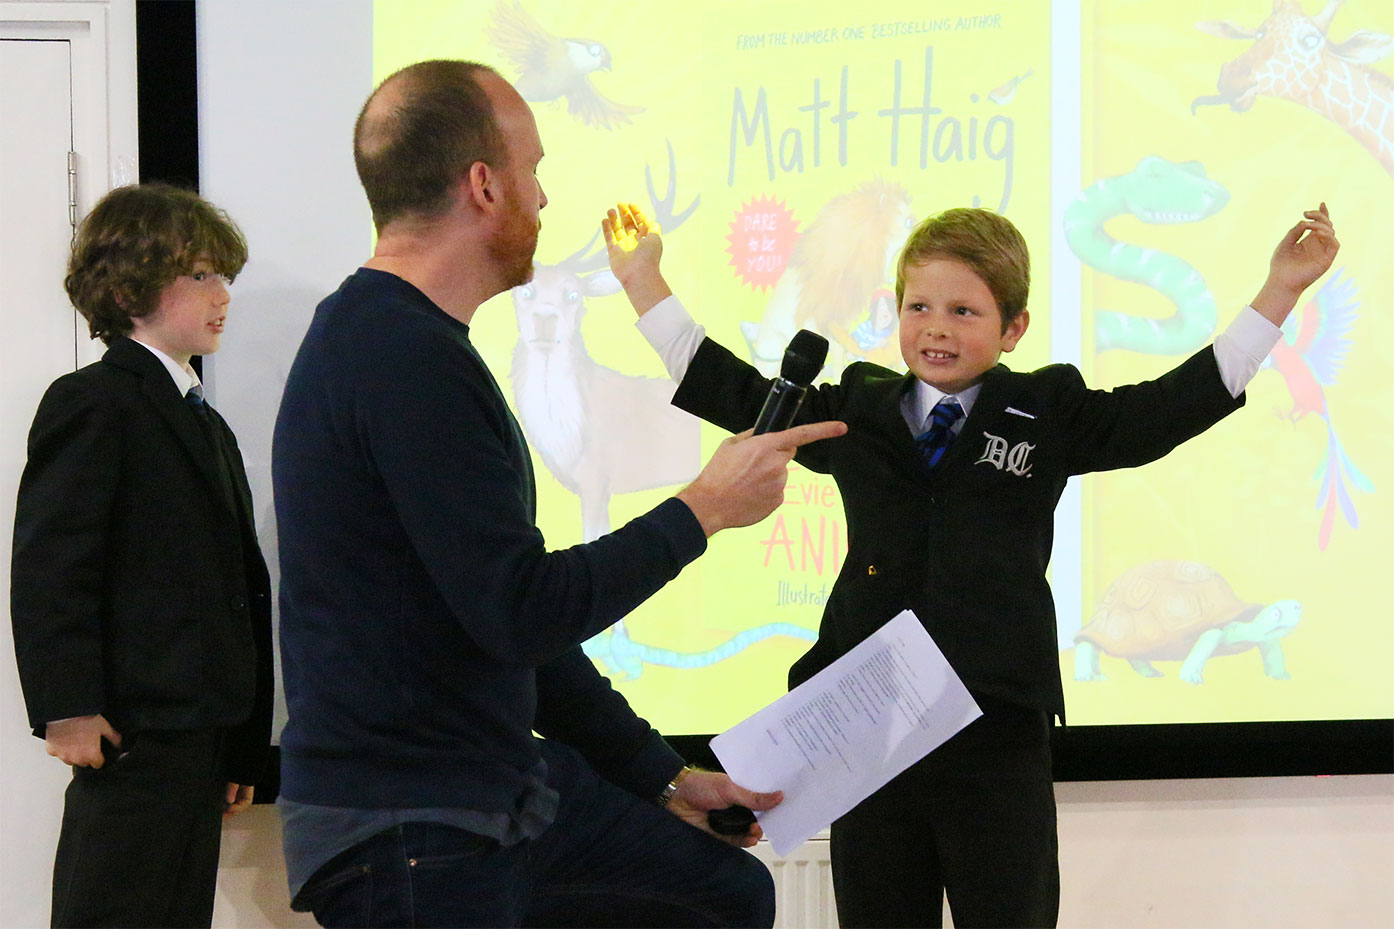 Bestselling author Matt Haig visits the Junior School